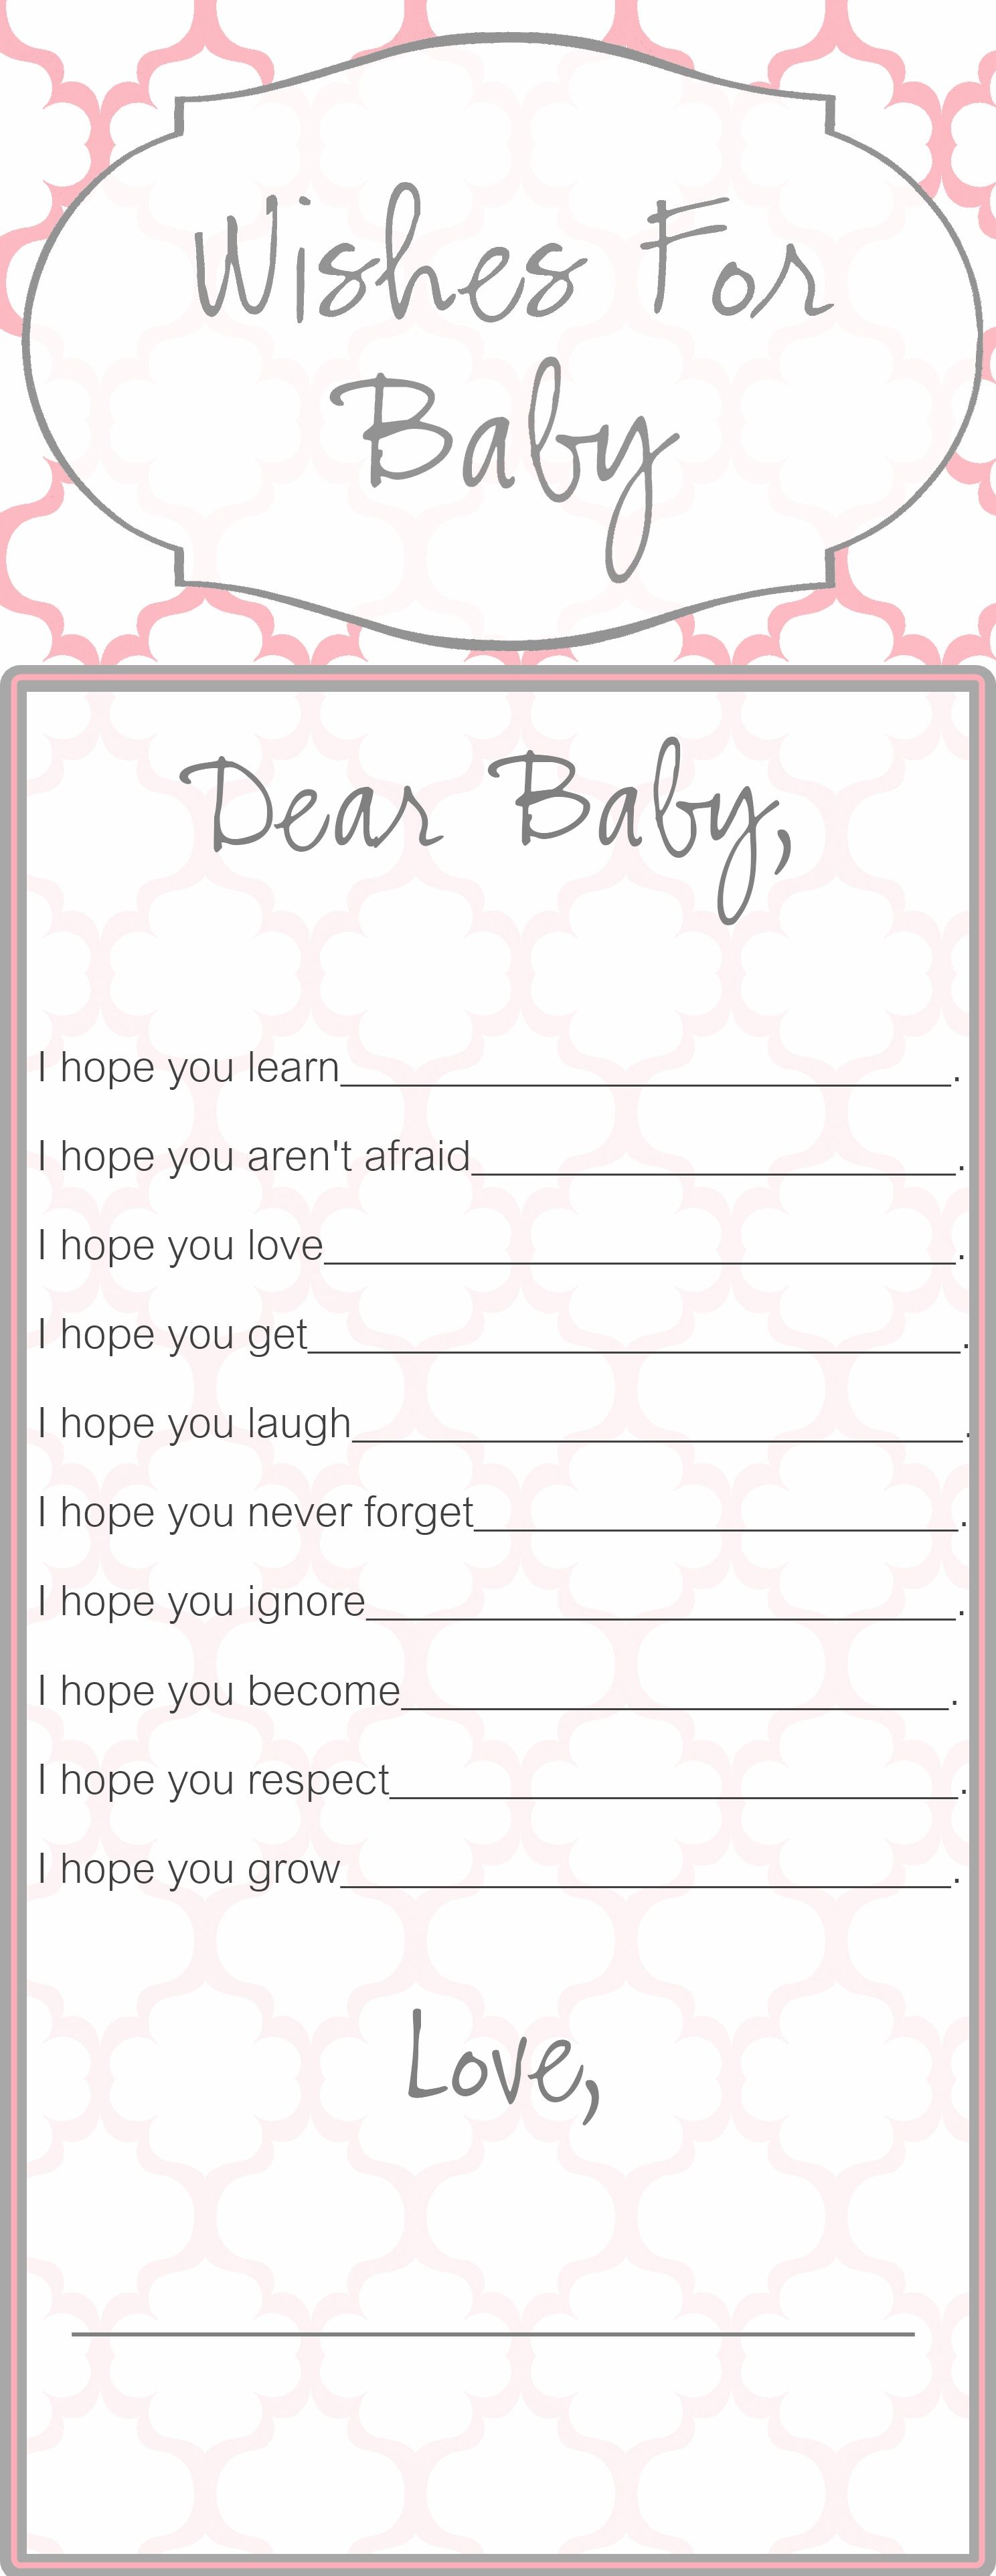 Wishes For Baby Template That I Created For A Baby Shower That My Sil Is Going To I M So